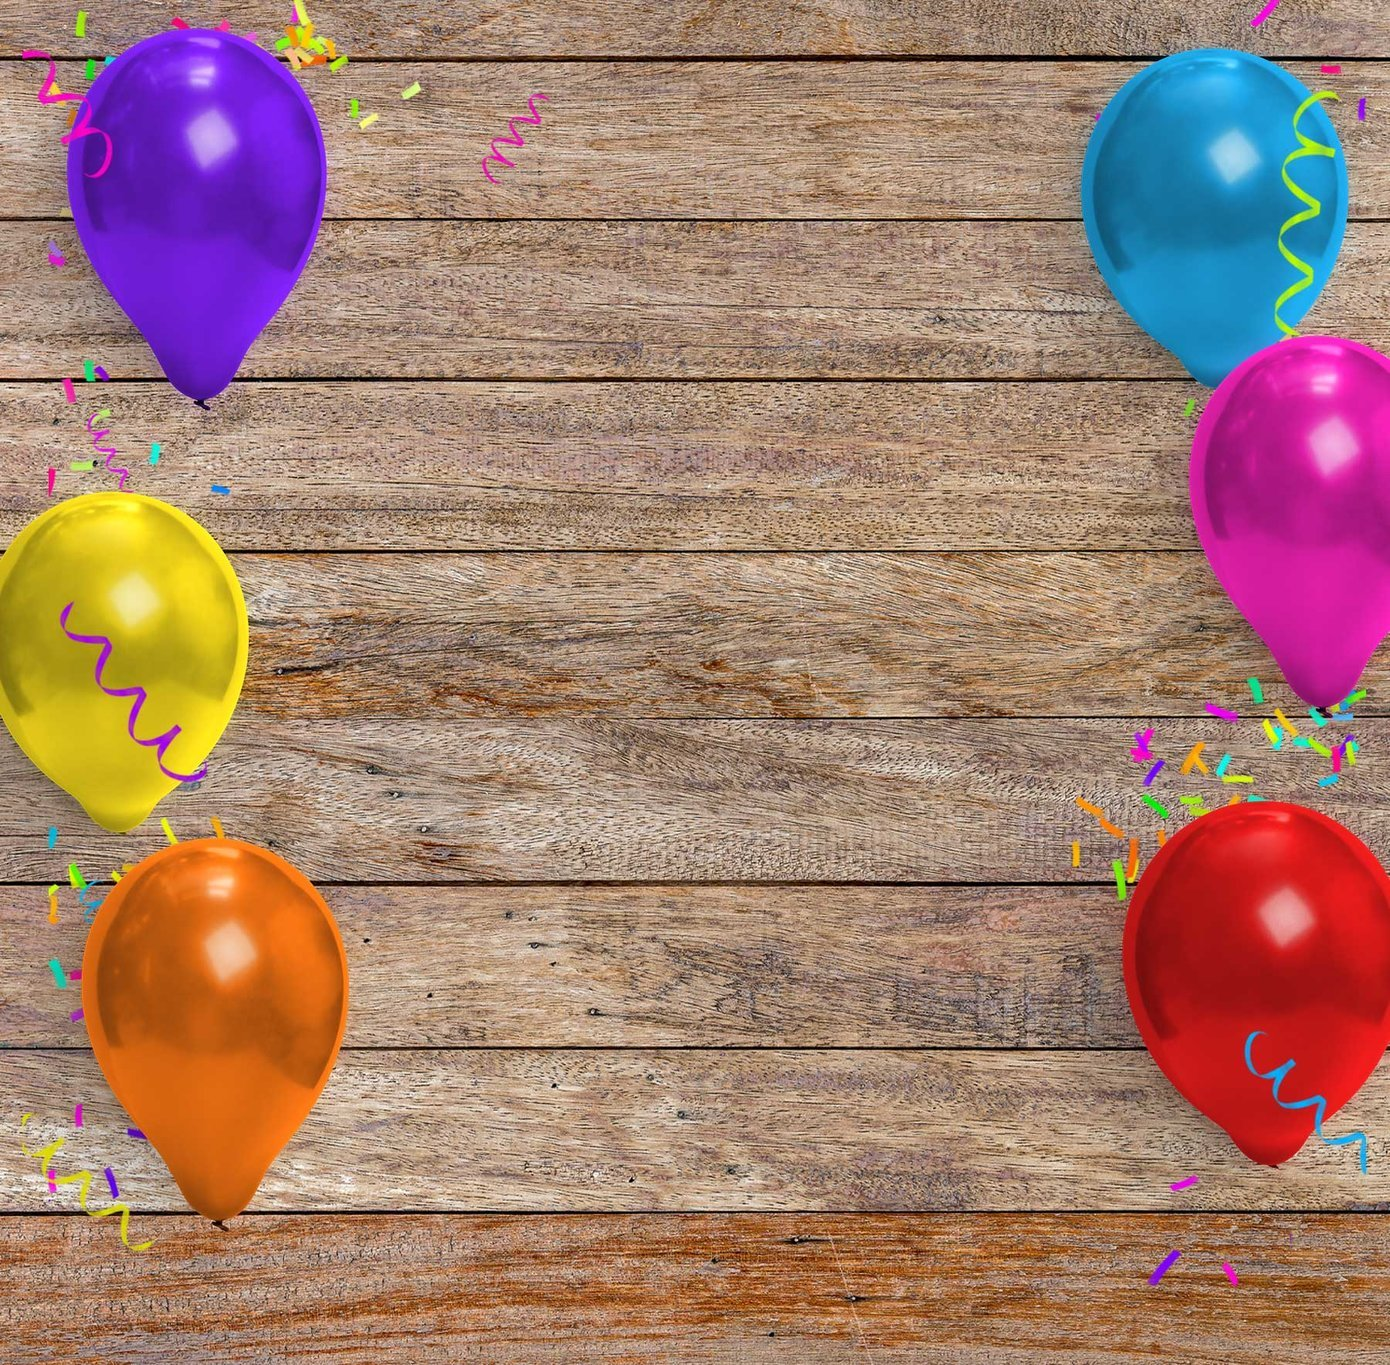 Balloons and confetti on a wood background